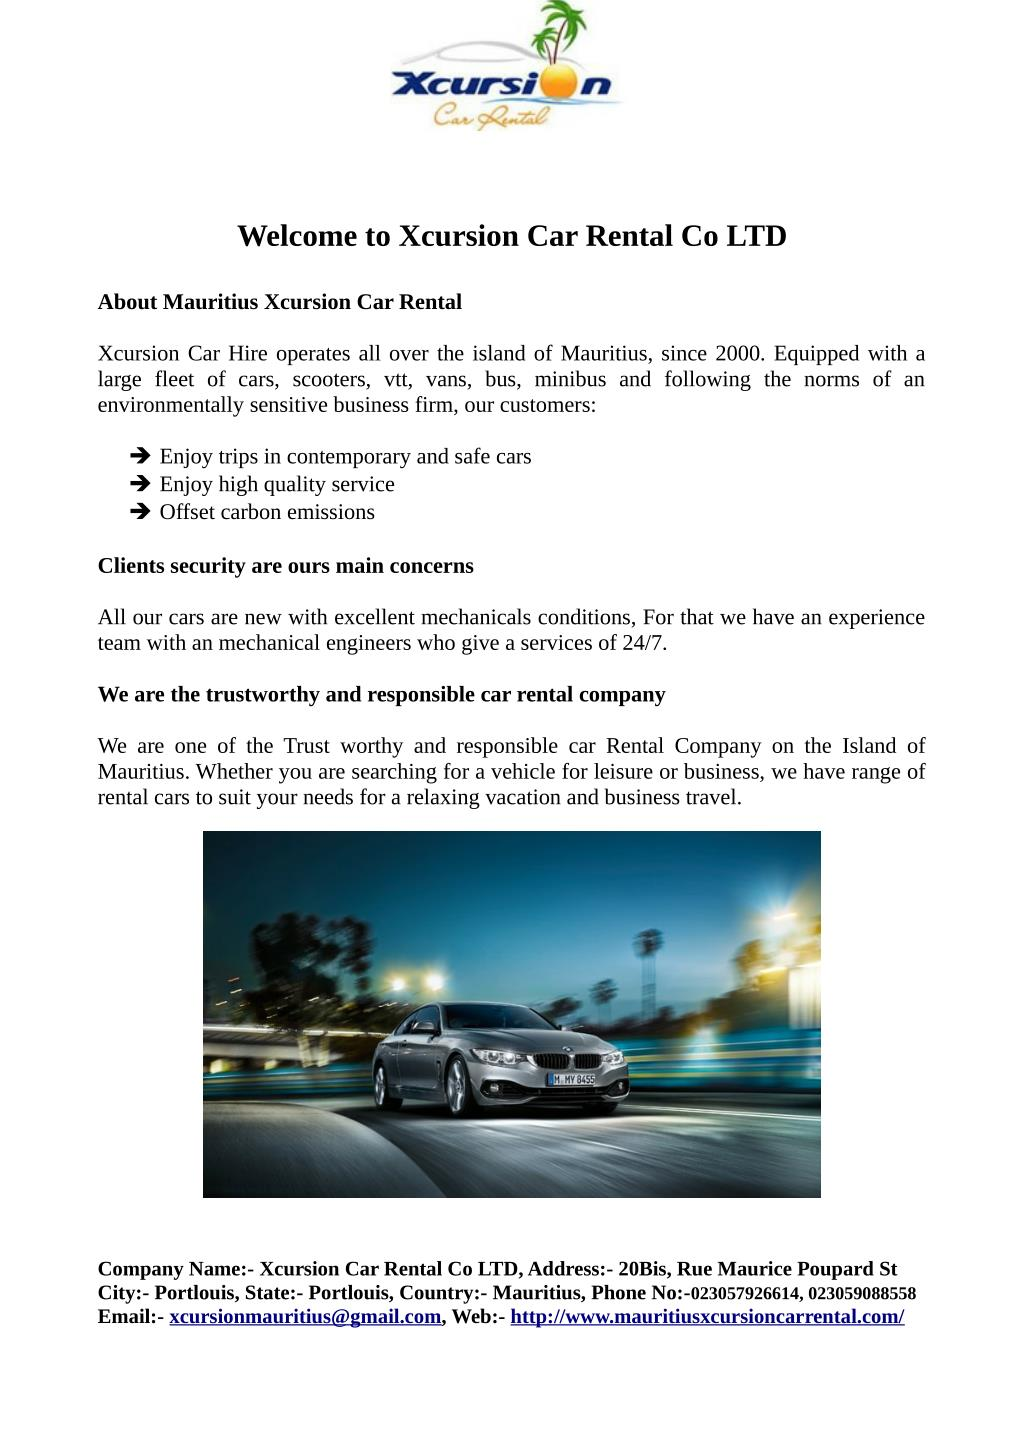 Ppt Welcome To Xcursion Car Rental Co Ltd Powerpoint Presentation